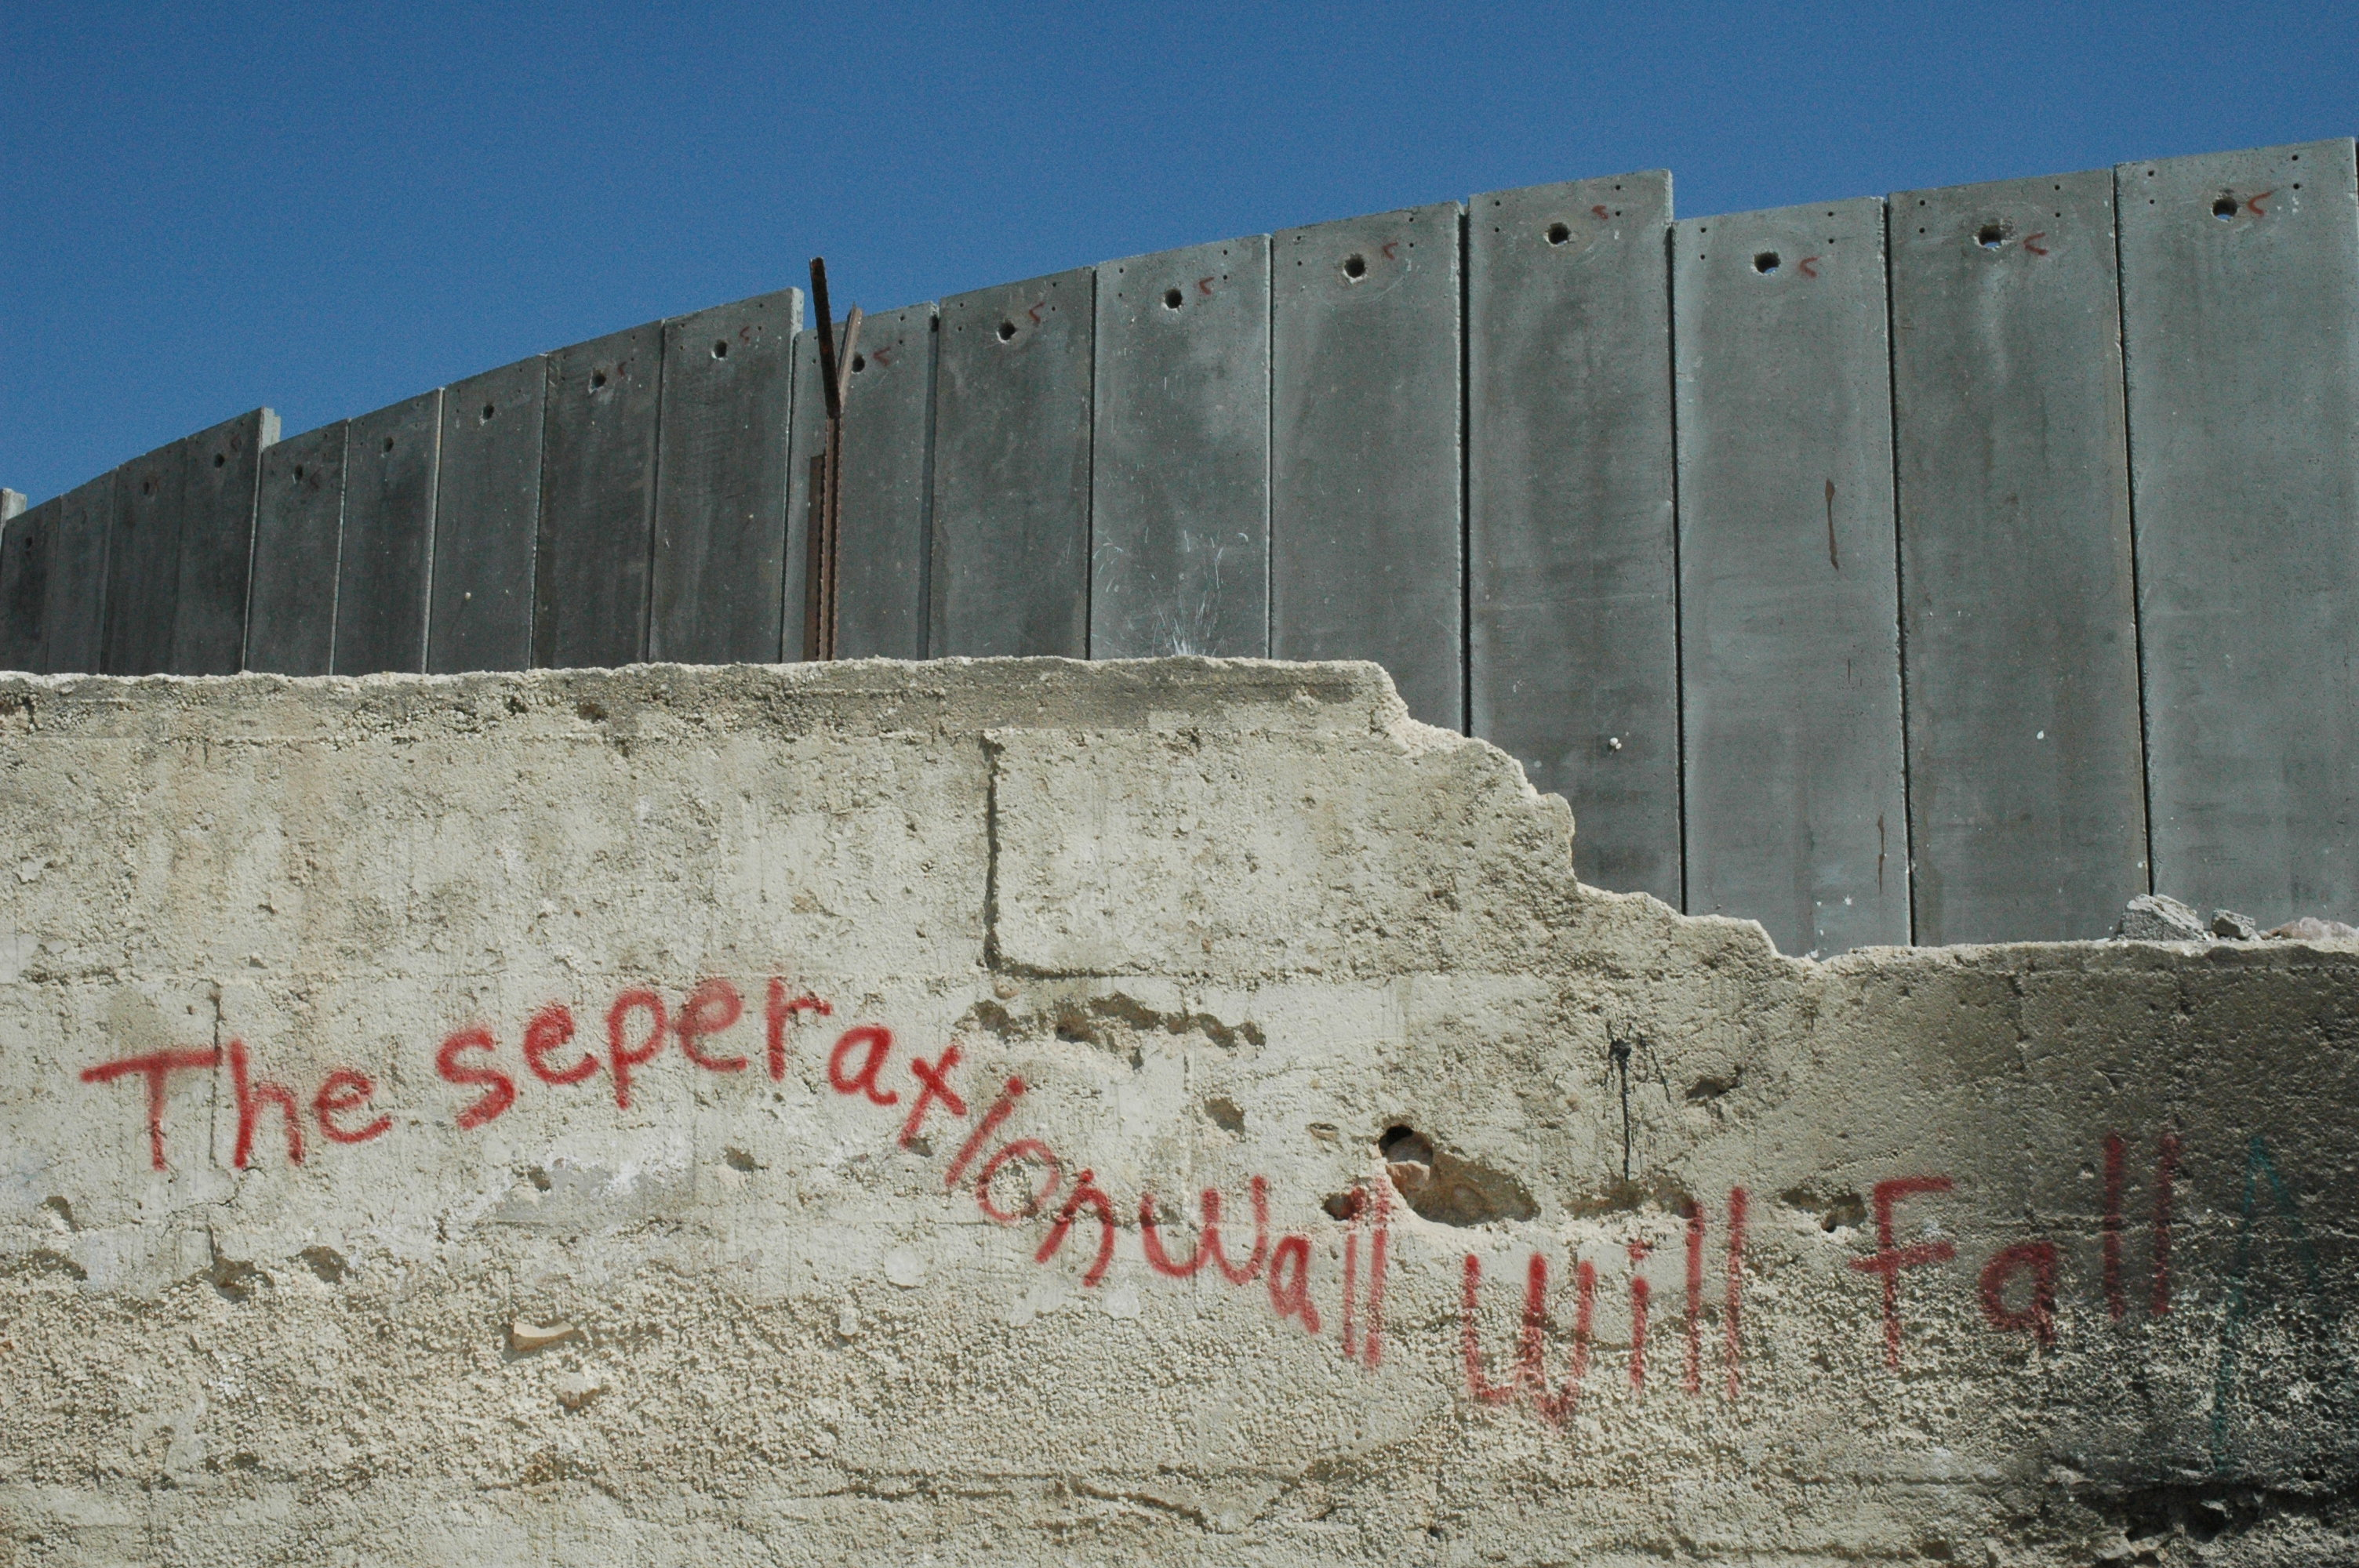 Graffiti_near_israeli_wall-